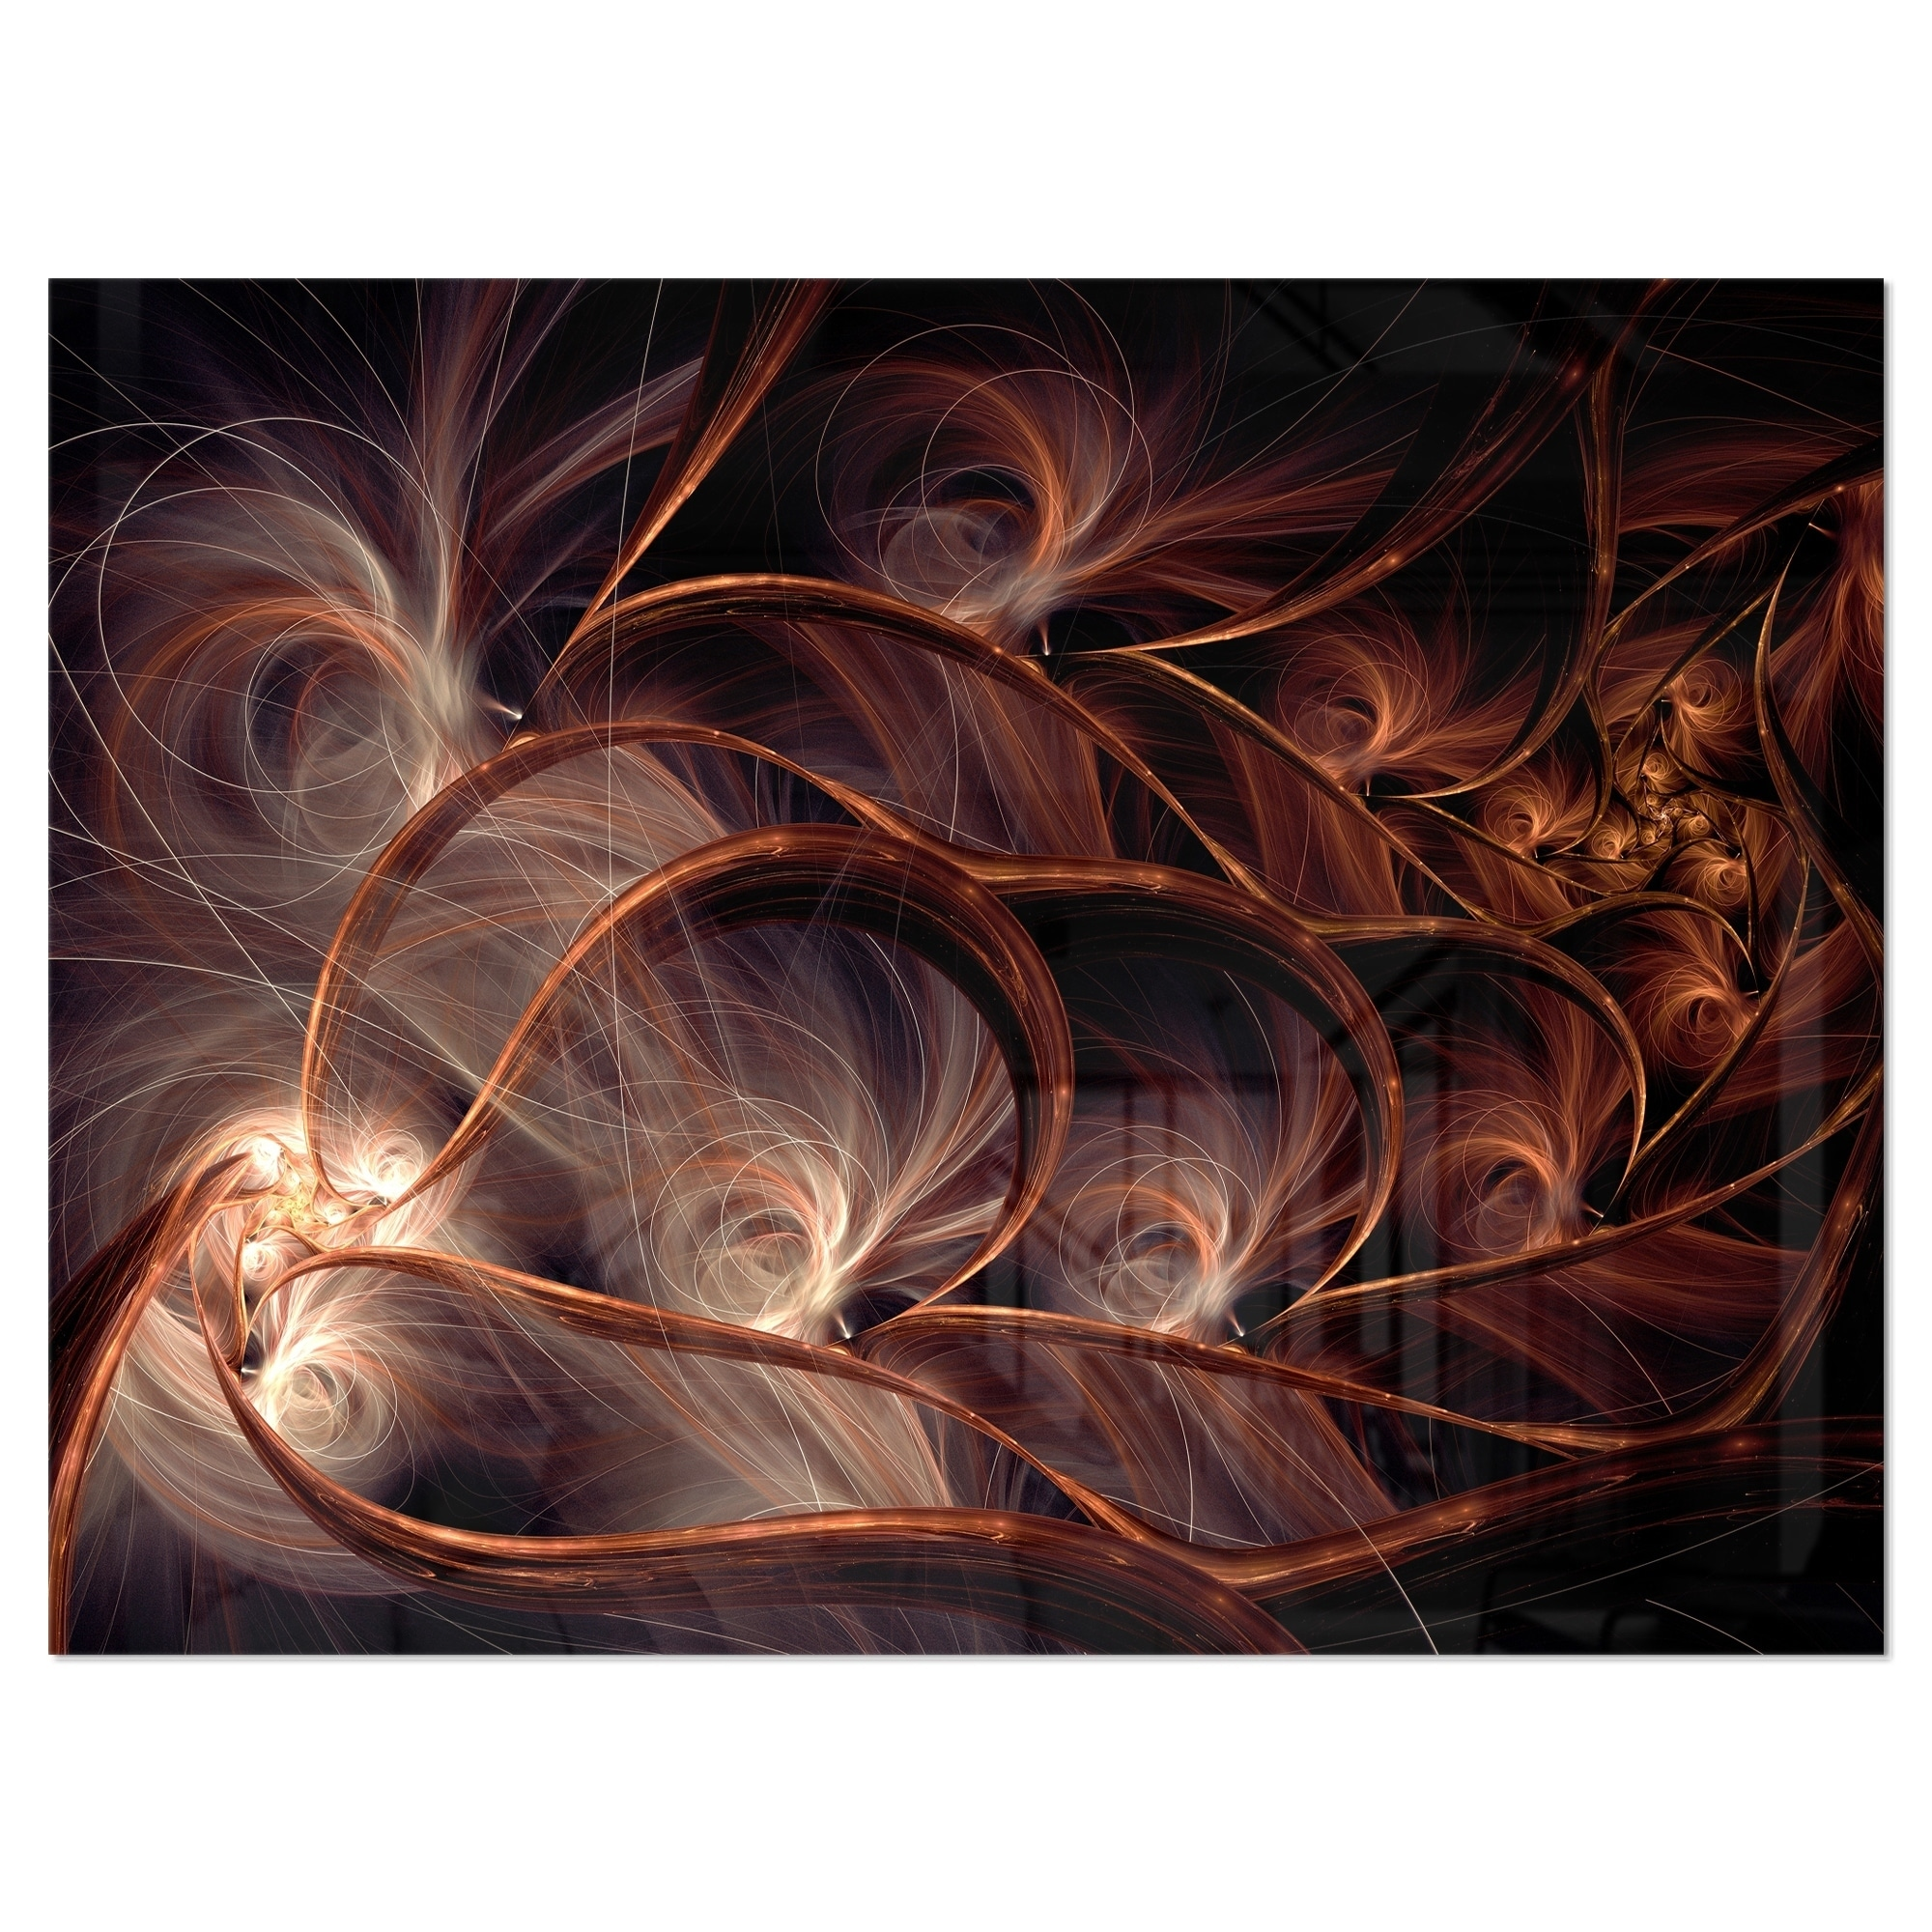 Glittering Brown Fractal Flower On Black Large Floral Glossy Metal Wall Art Overstock 12778537